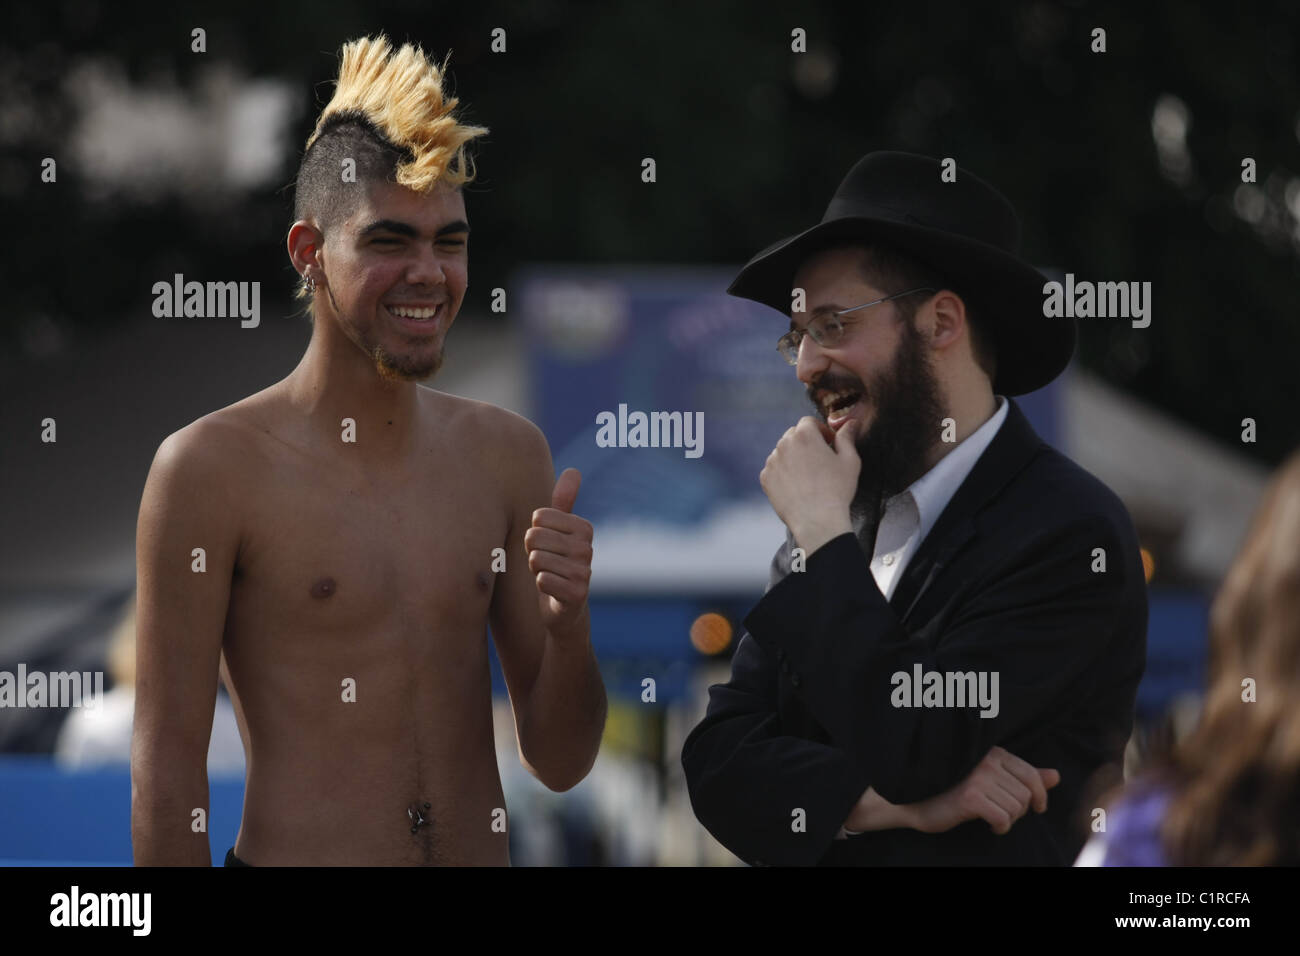 An ultra-Orthodox Jew discussion with a punk boy. Stock Photo